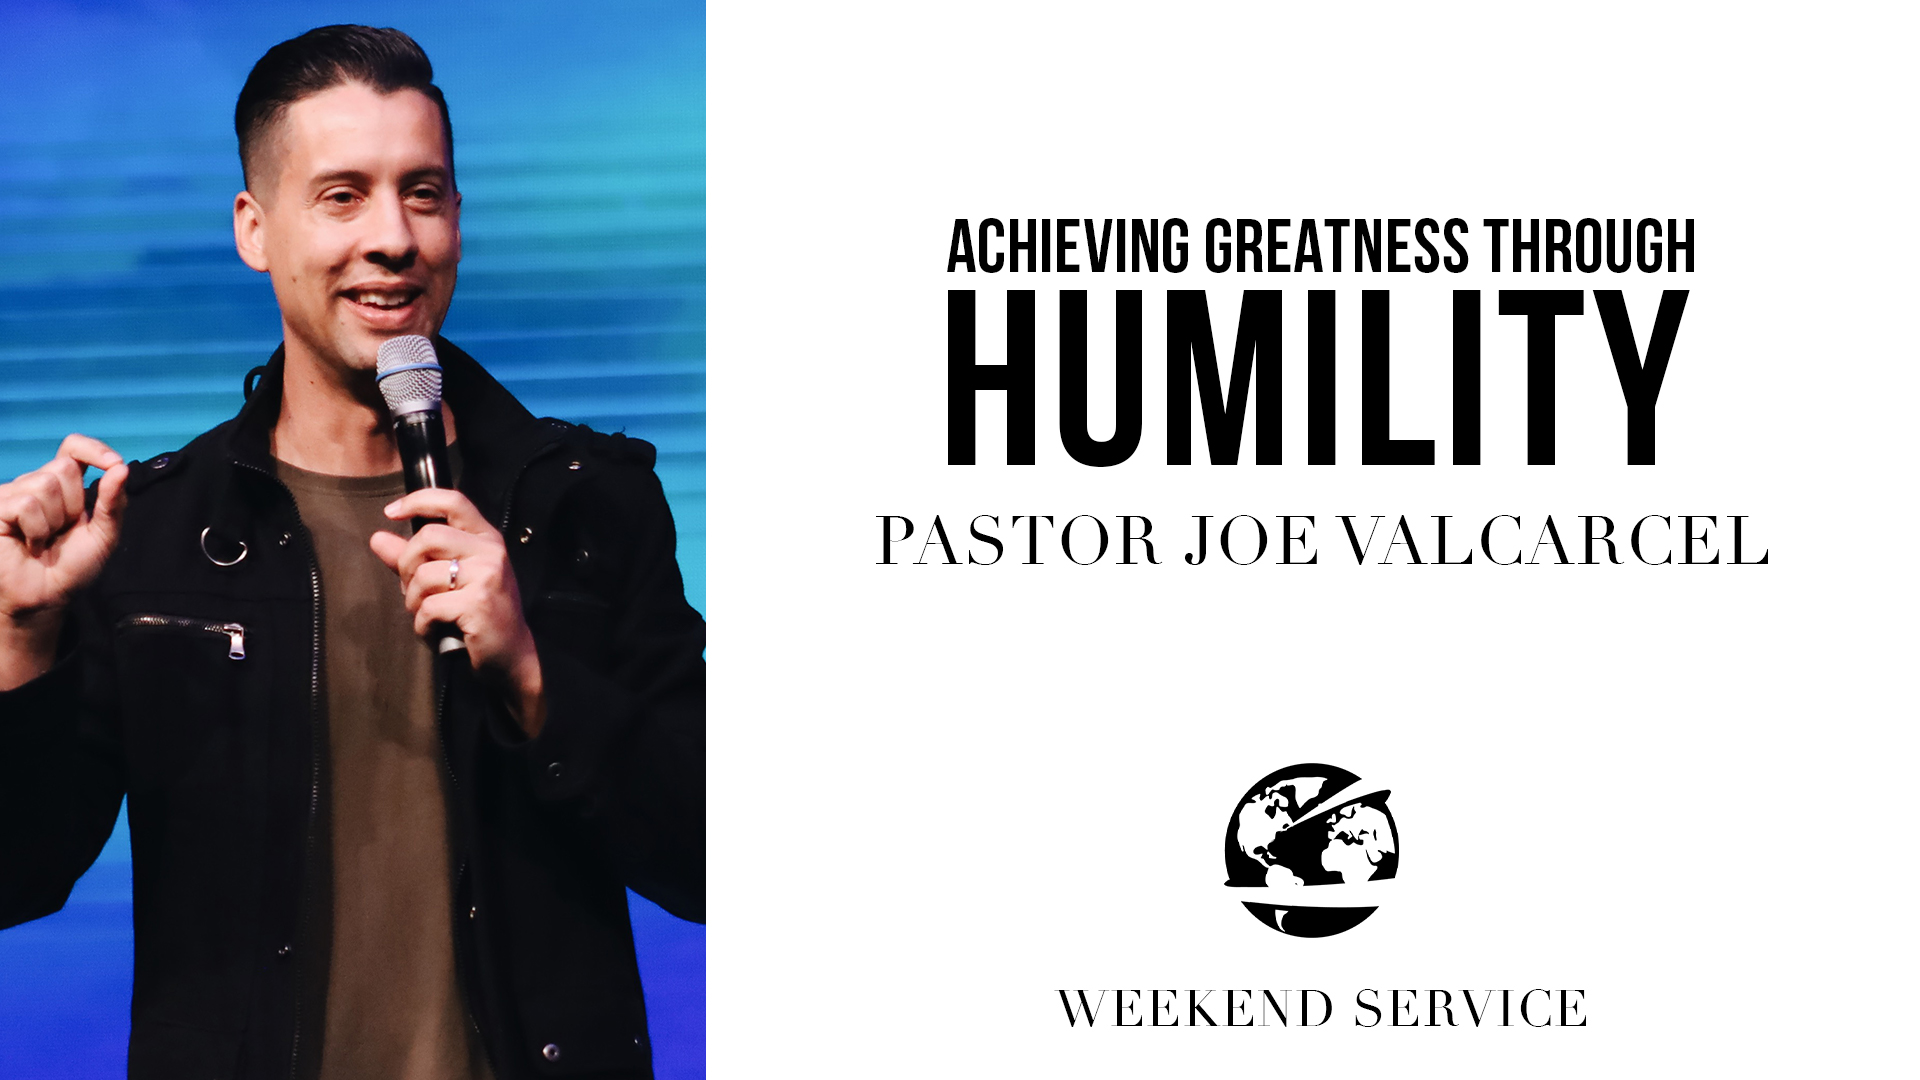 Watch Achieving Greatness Through Humility